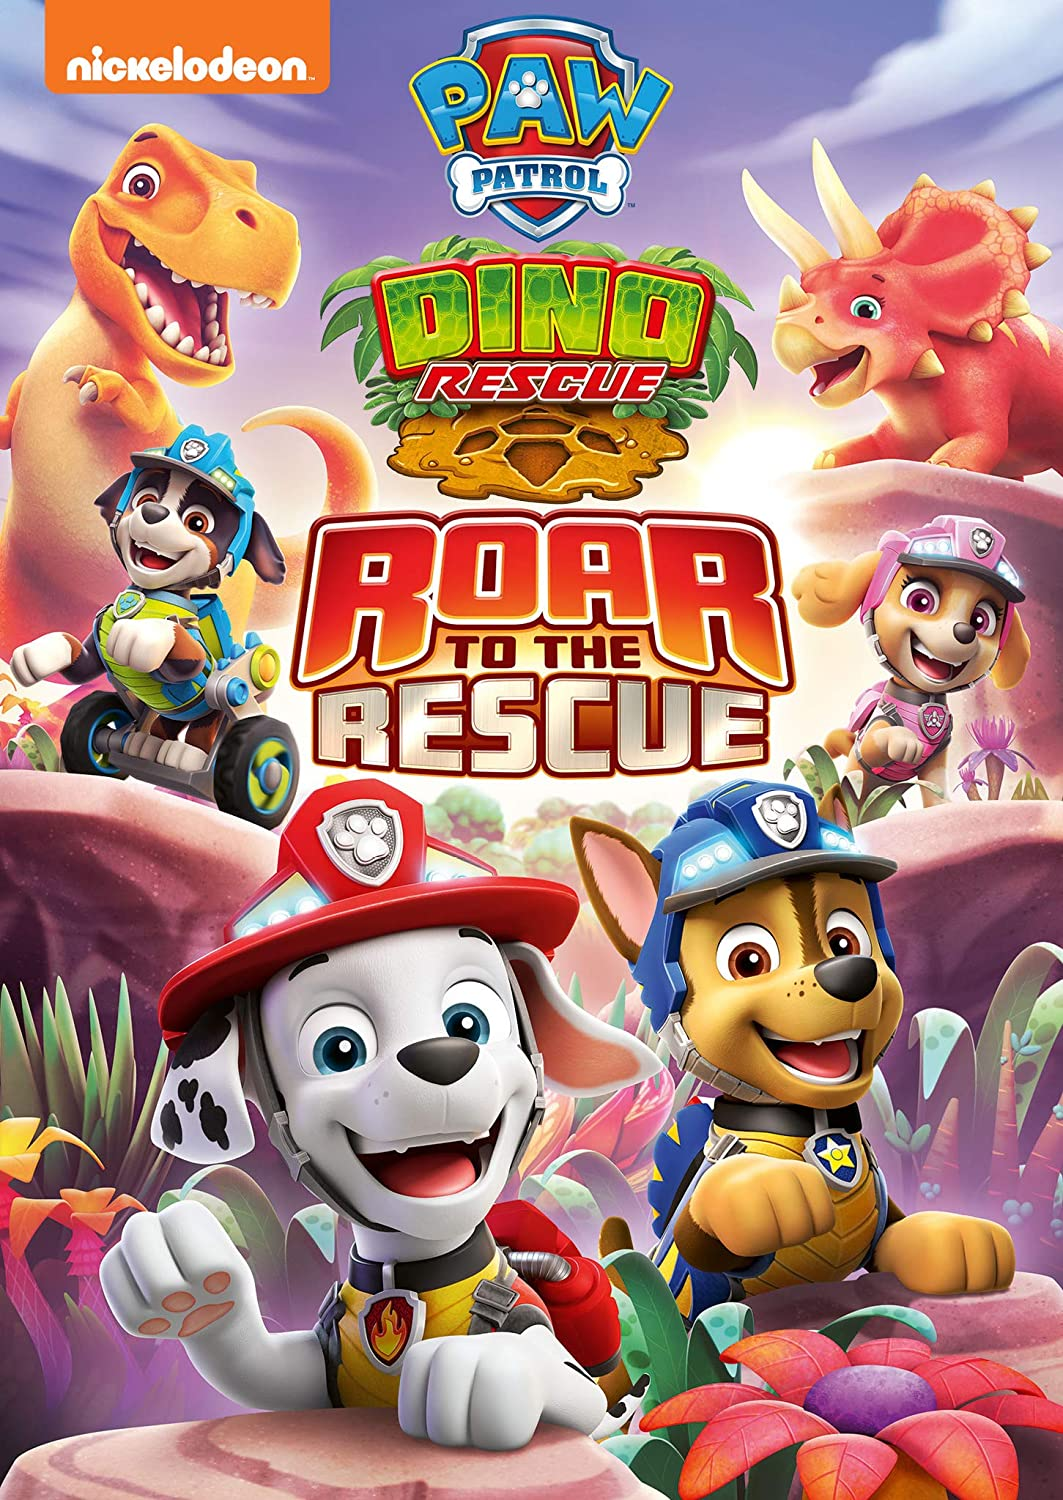 Get ready to return to the Dino Wilds for roaring rescues in the all-new DVD release. PAW Patrol: Dino Rescue Roar to the Rescue. Follow along As the PAW Patrol reunite with their prehistoric pals, they'll help a runaway Brachiosaurus, perform some dino-dentistry, stop a pie-clone, and more.